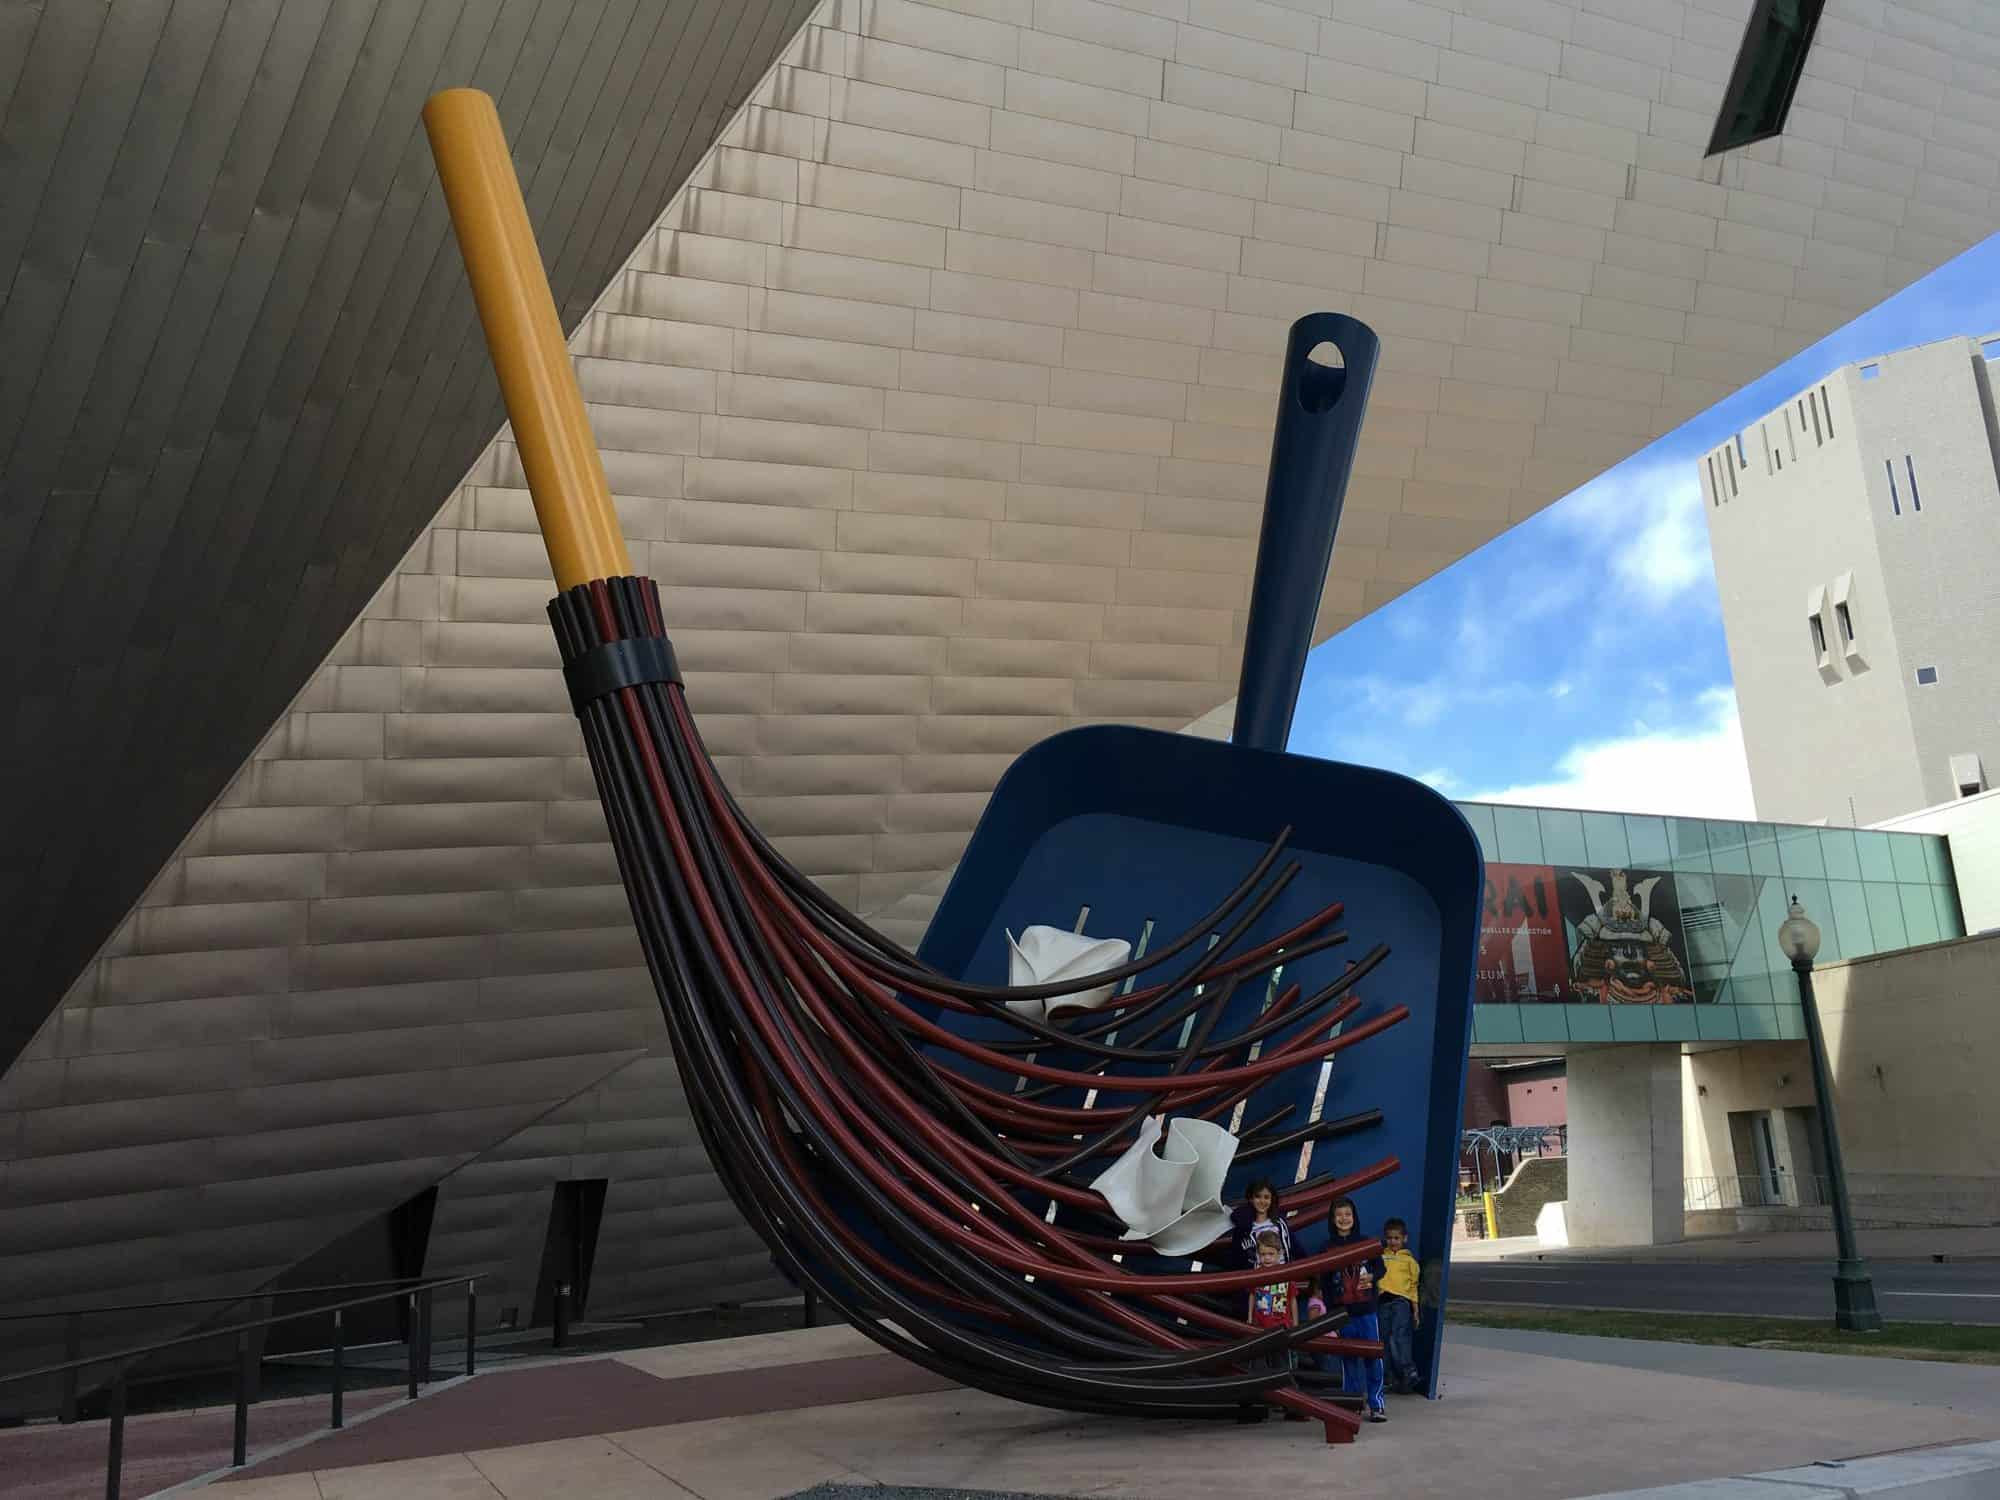 christmas-things-to-do-in-denver-art-museum-by-tiffany-vaughn